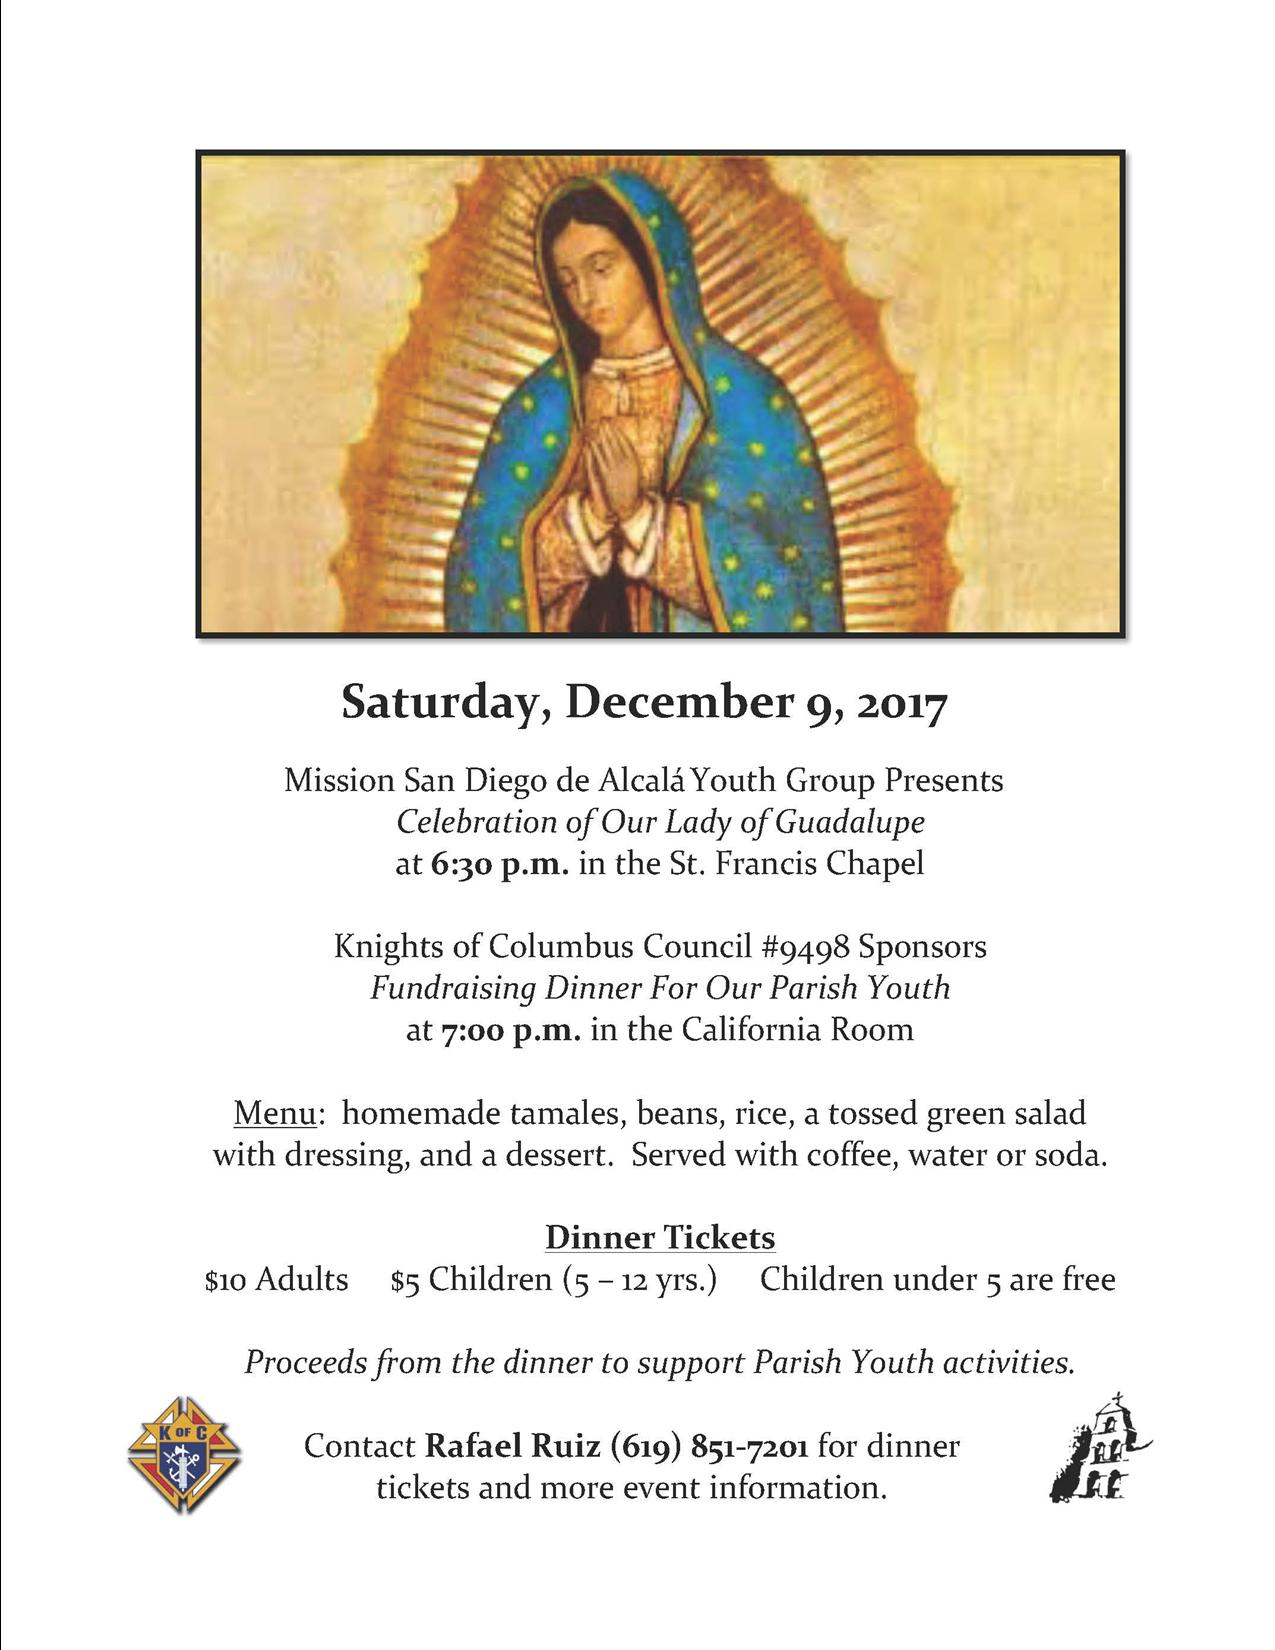 A Celebration of Our Lady of Guadalupe